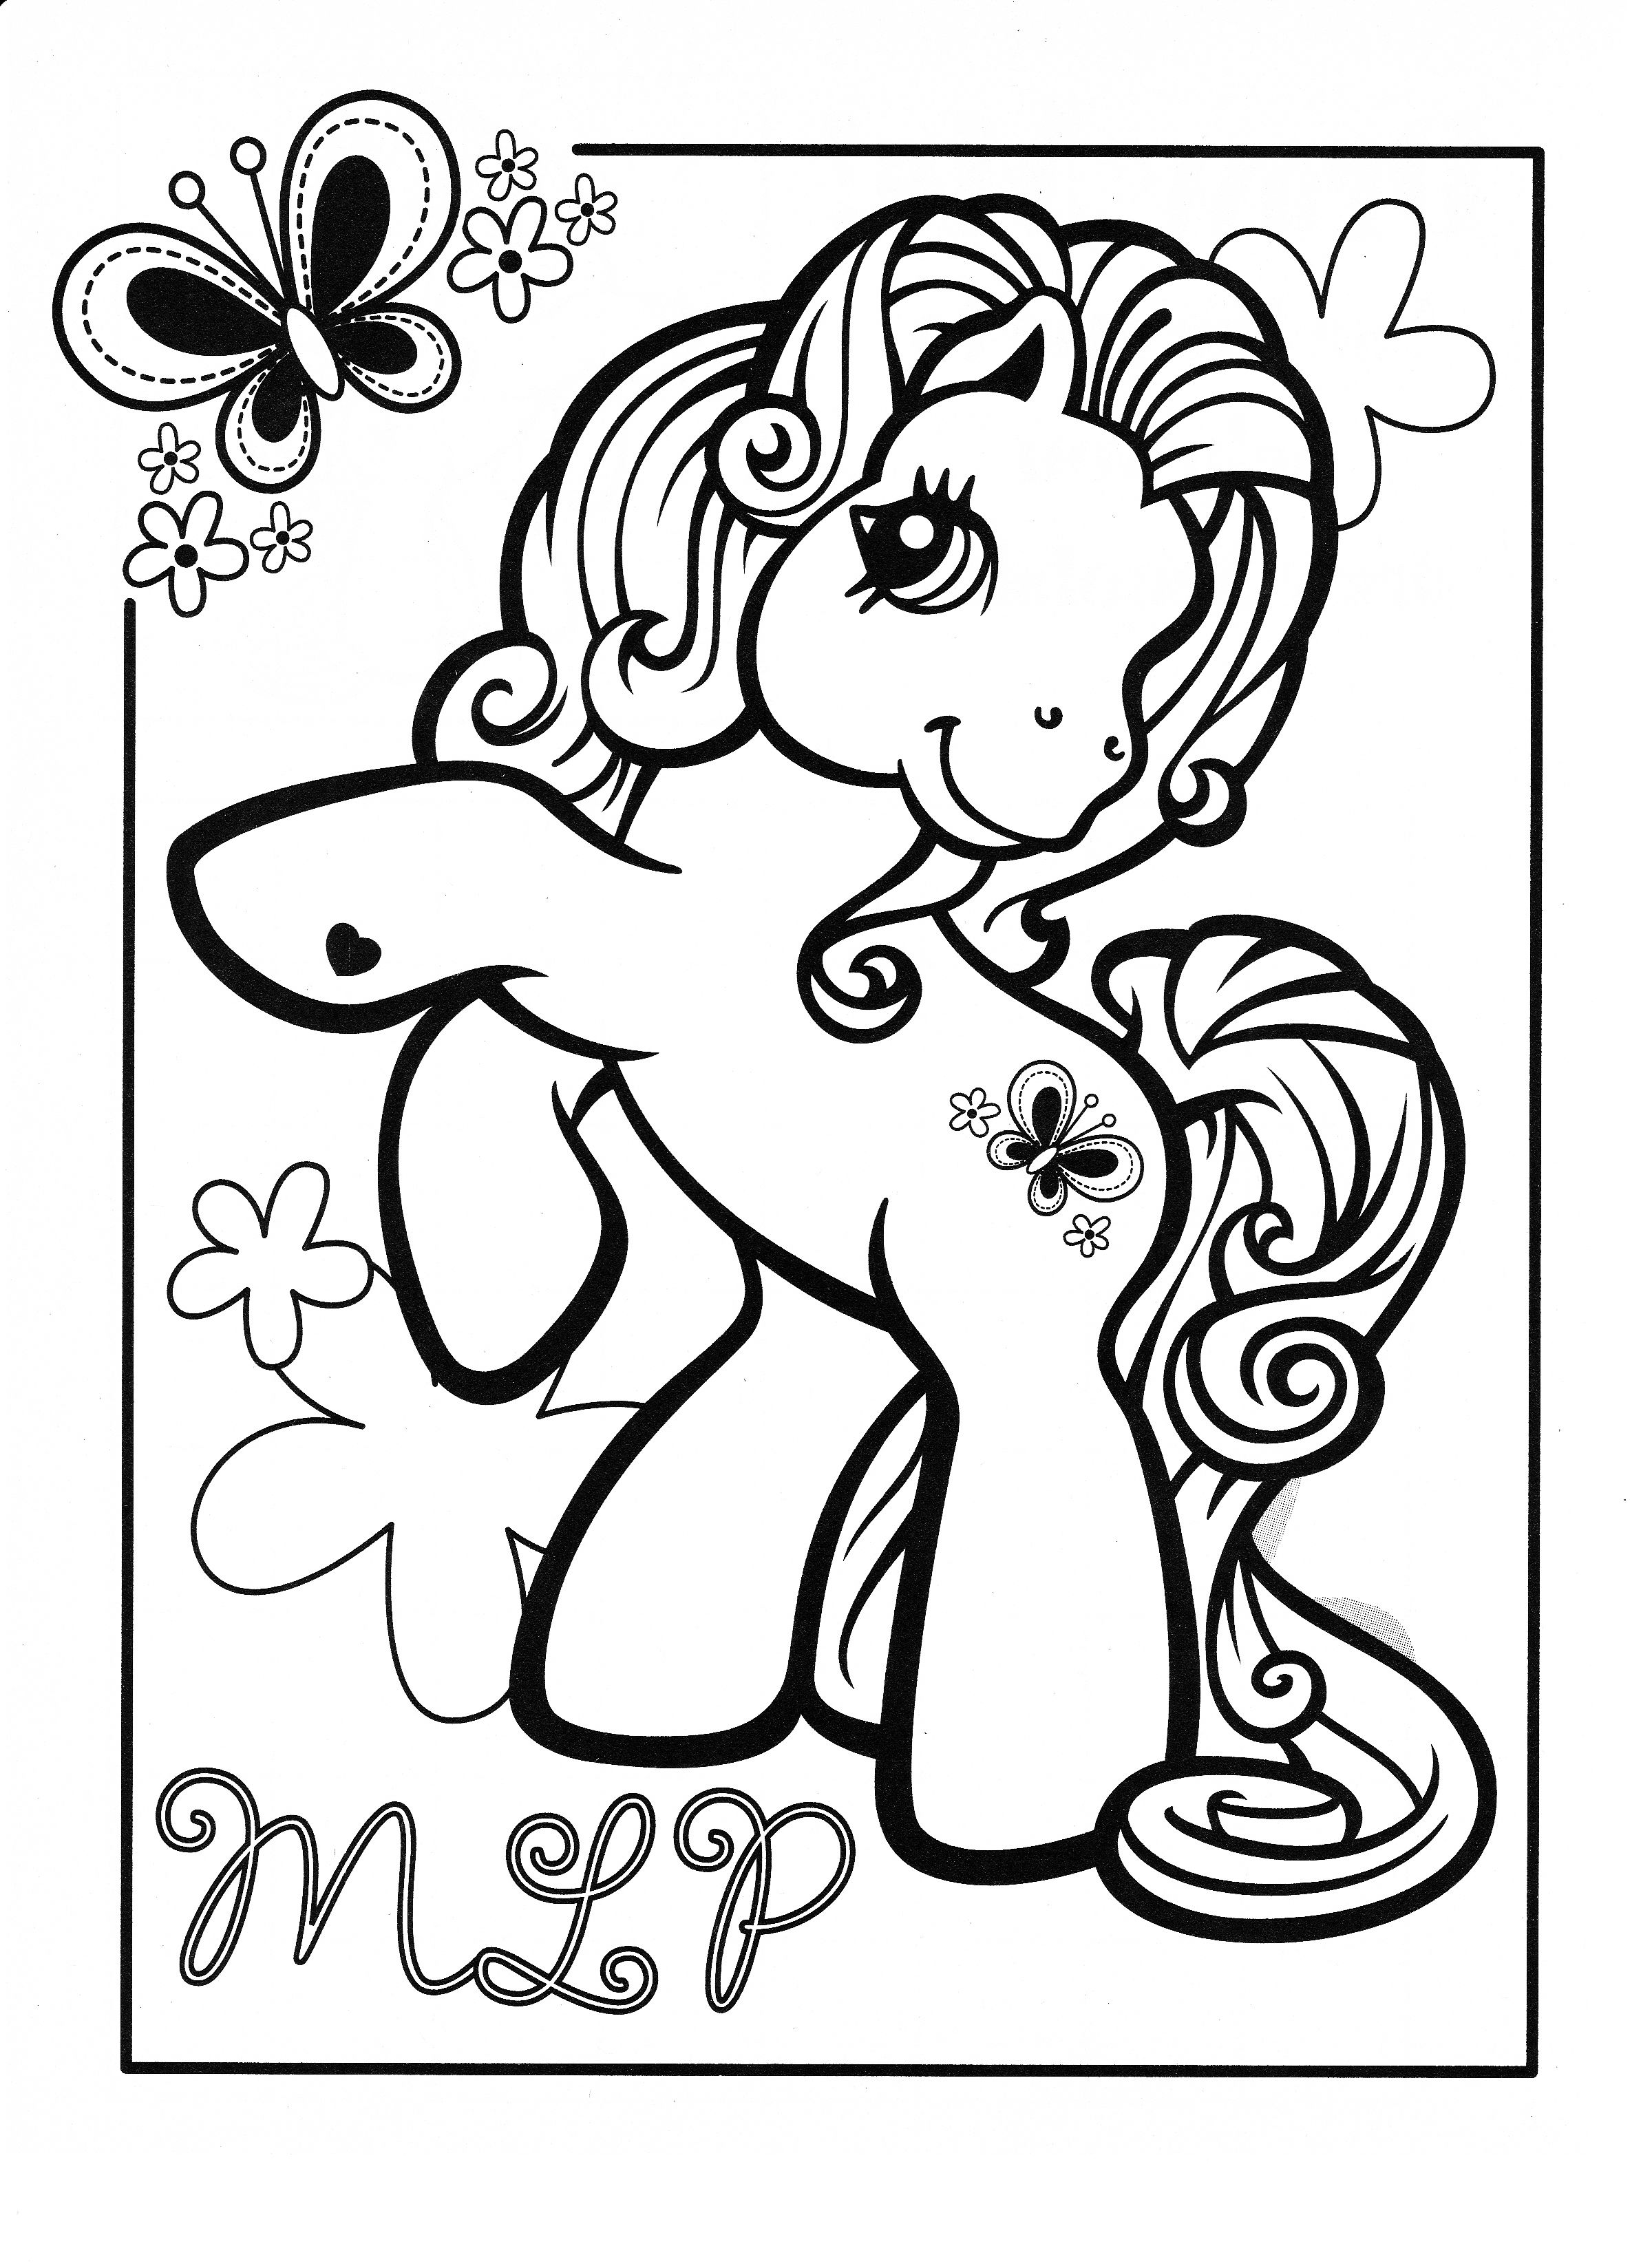 My Little Pony Ausmalbilder Ausdrucken : My Little Pony Coloring Page Mlp Scootaloo Coloring Pages